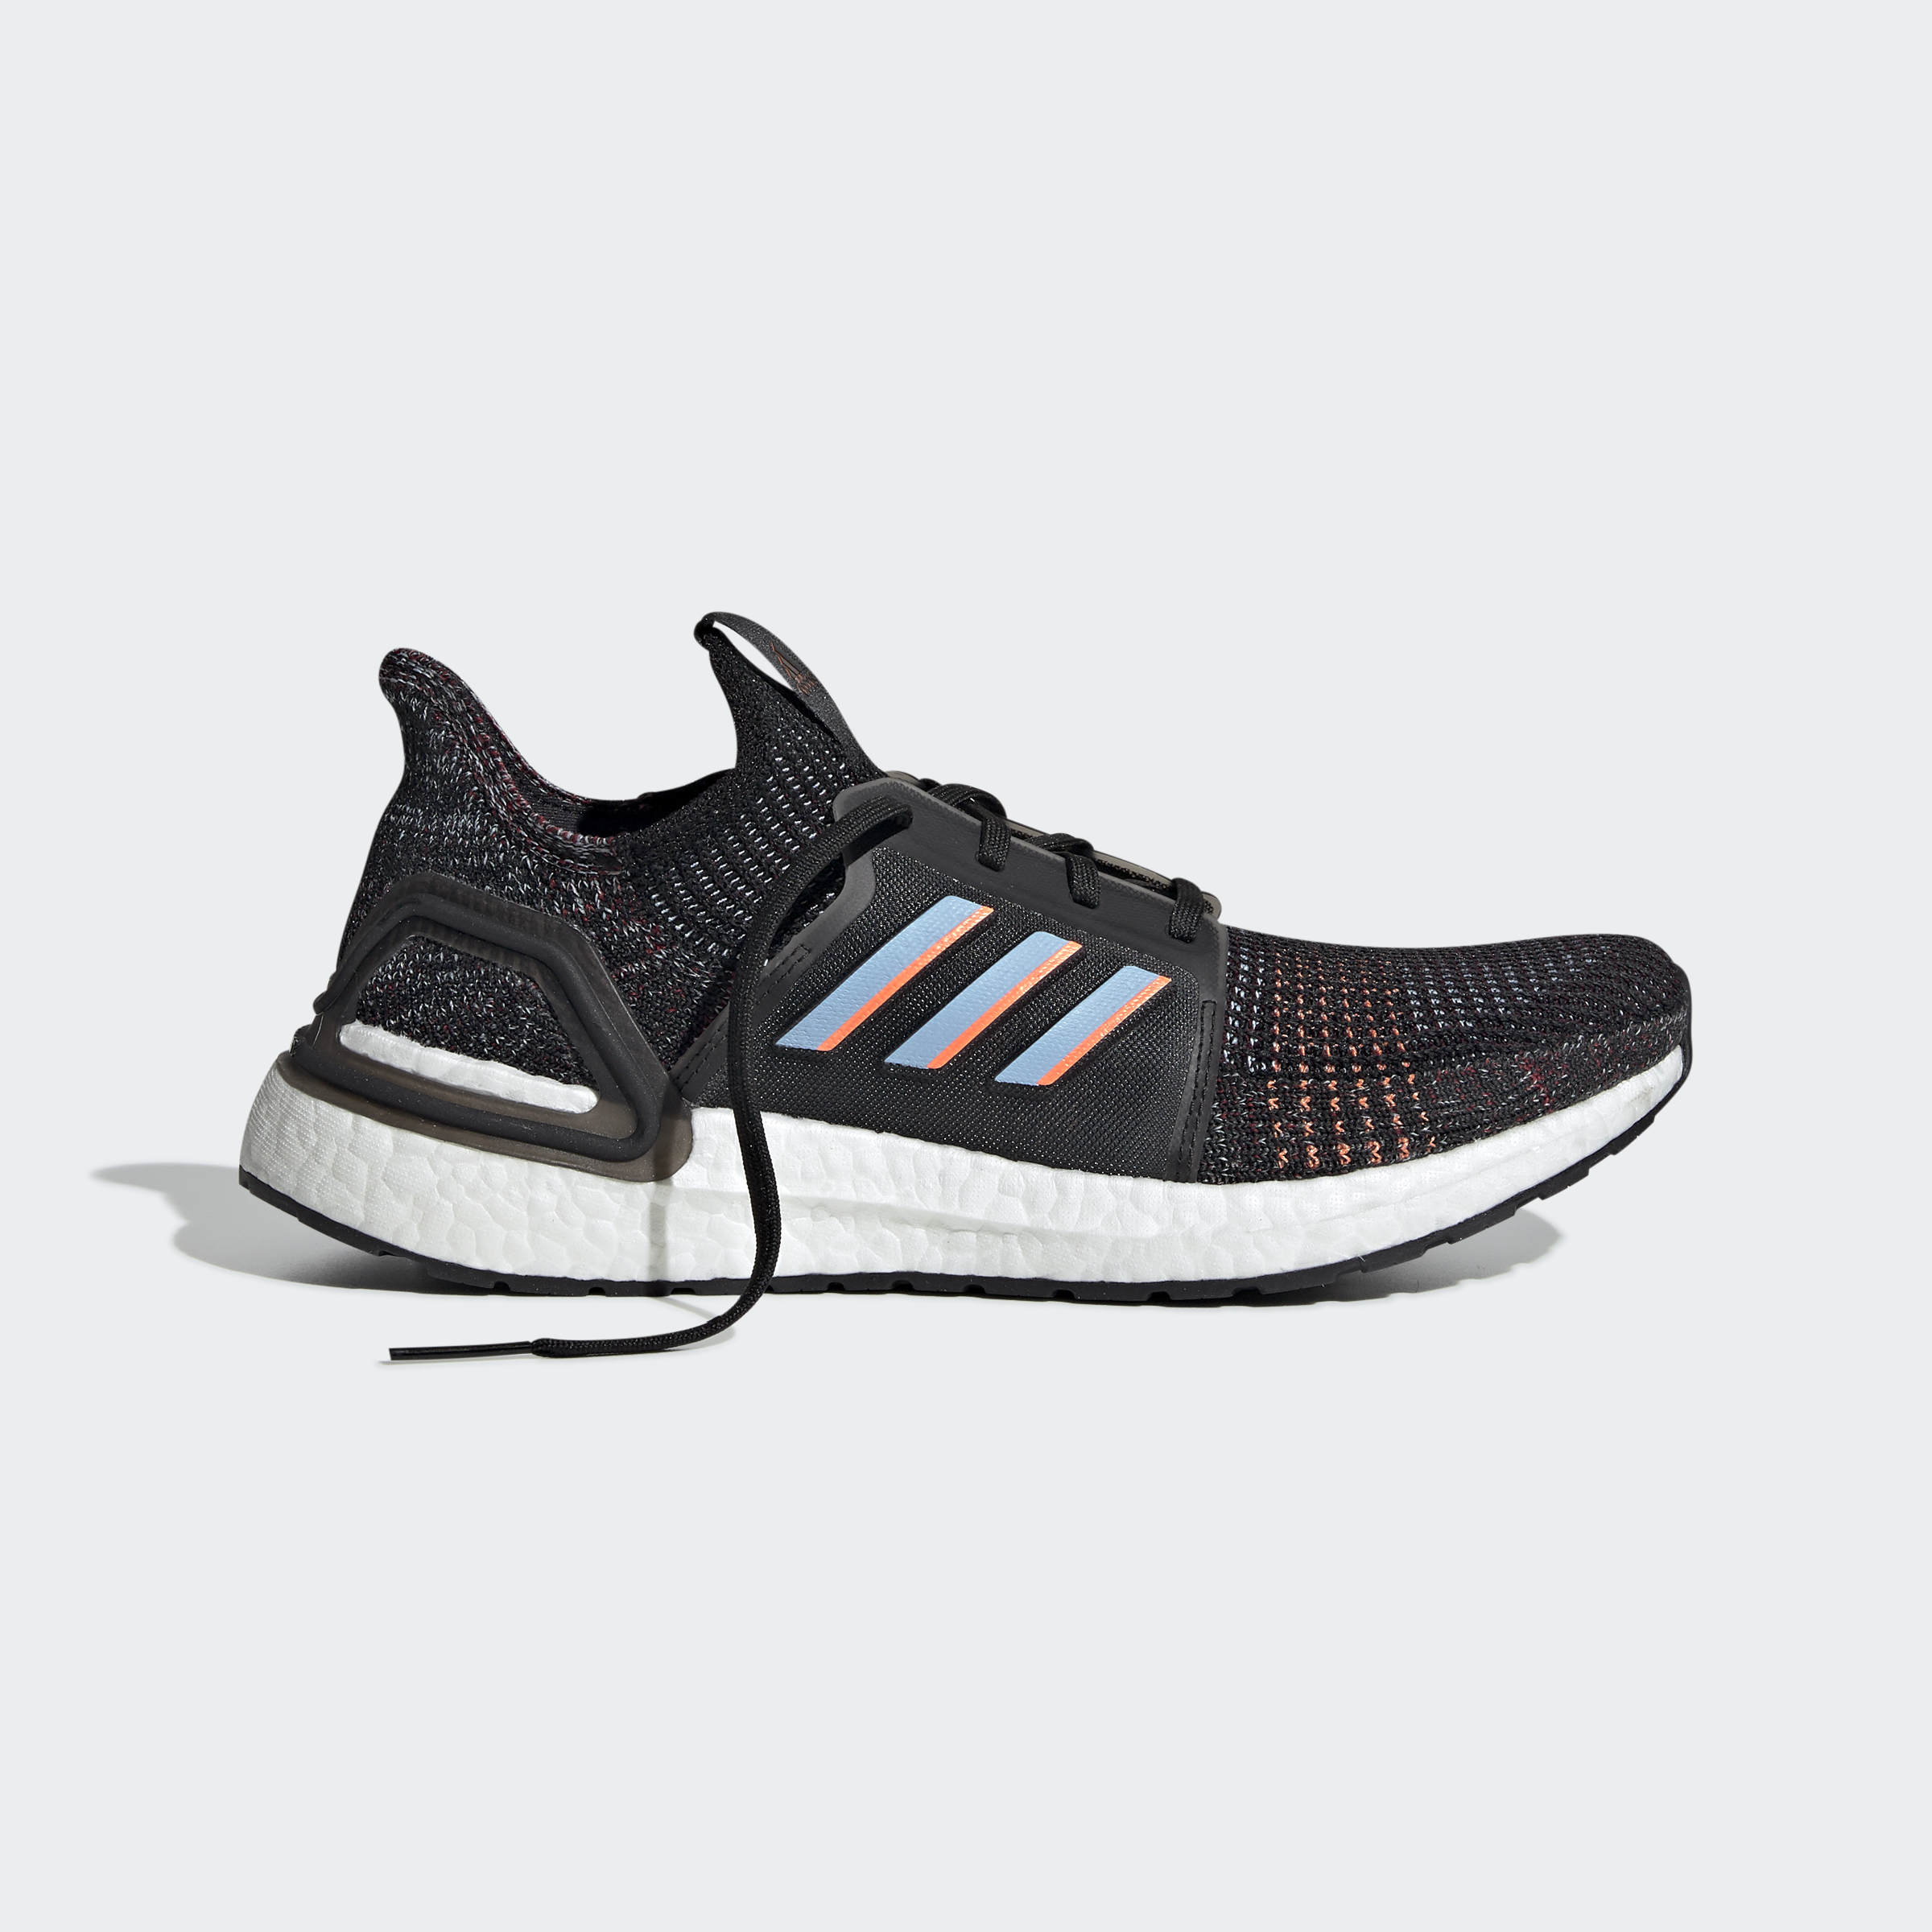 adidas-Ultraboost-19-Shoes-Athletic-amp-Sneakers thumbnail 134